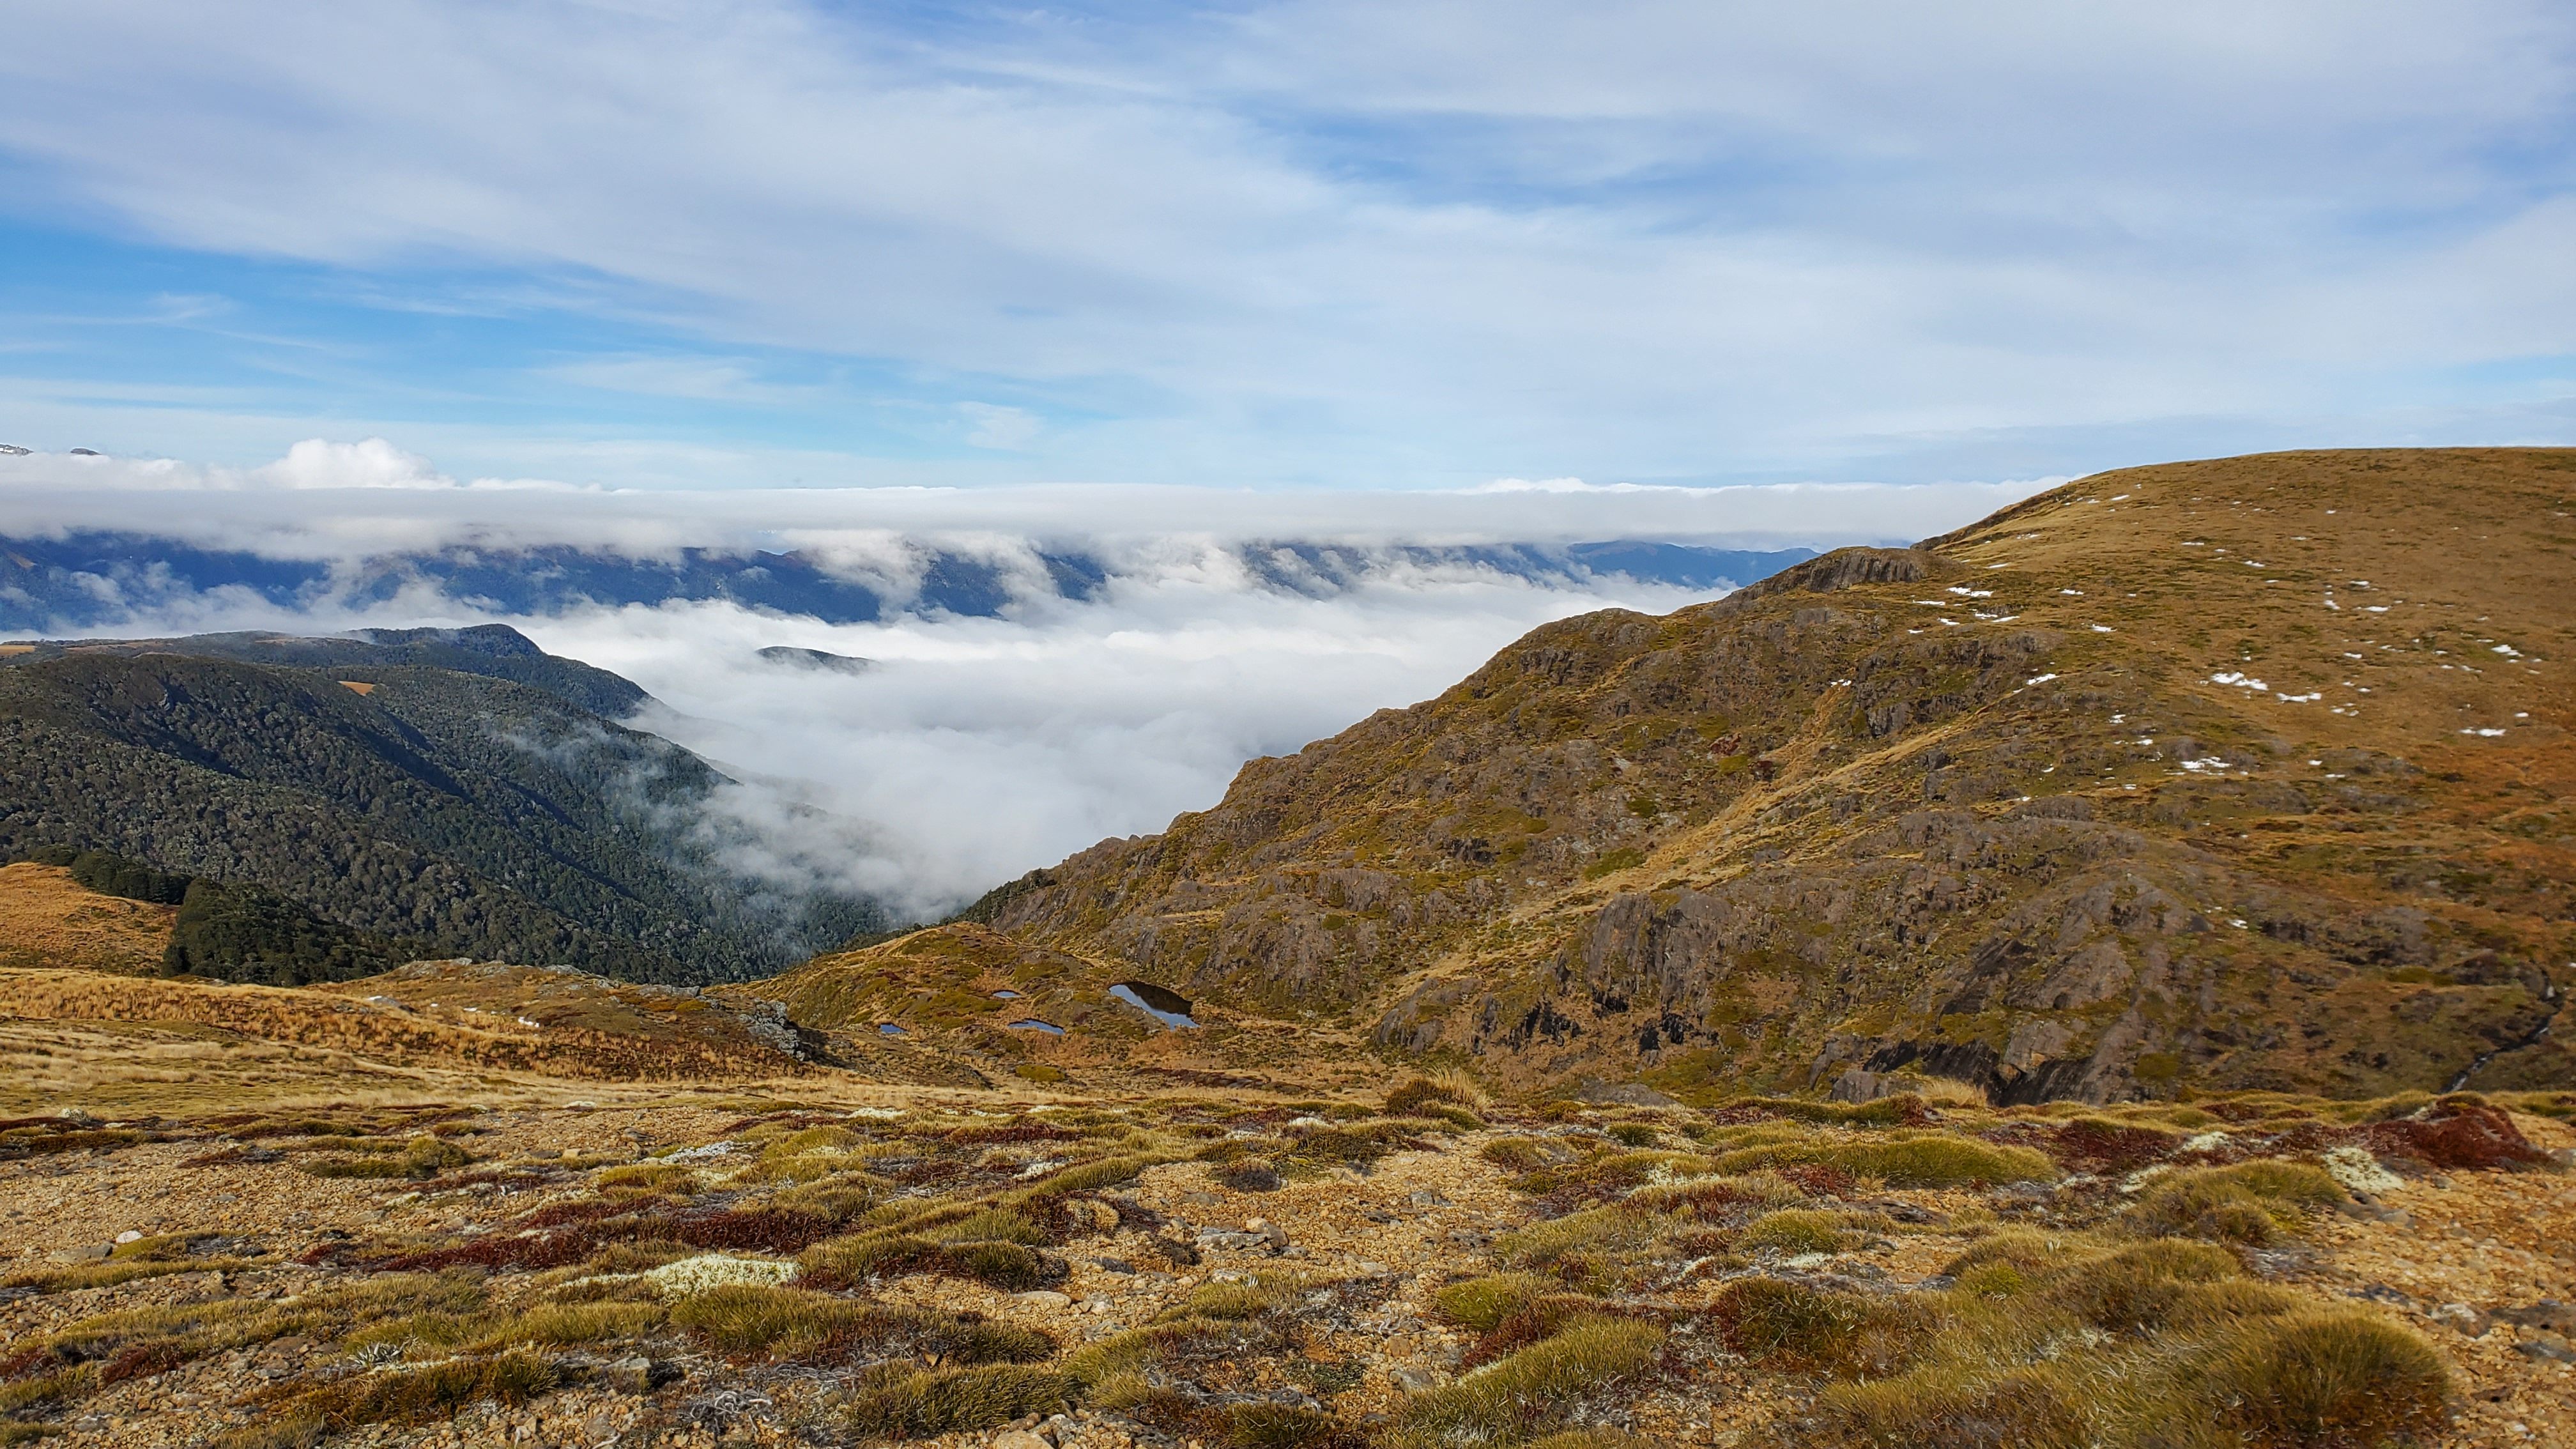 Views to the West from the Tableland